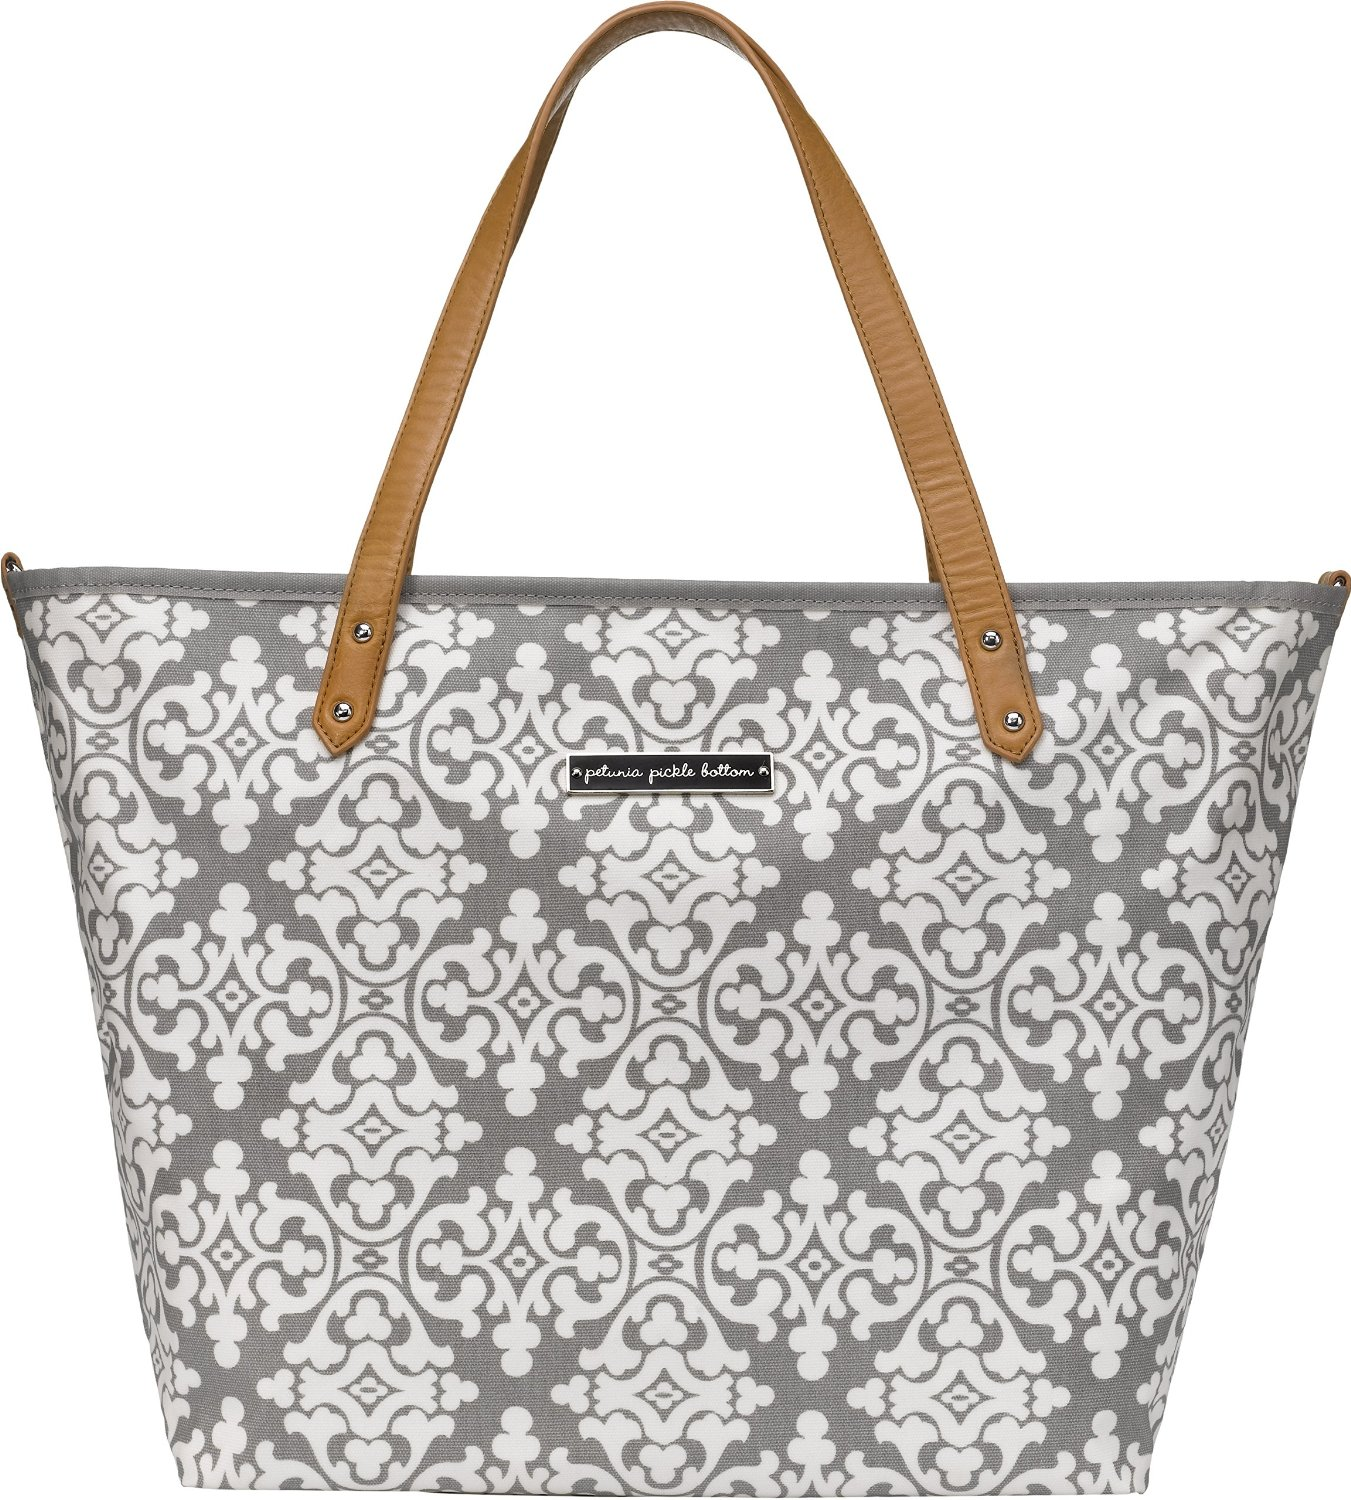 petunia pickle bottoms downtown tote breakfast in berkshire grey ebay. Black Bedroom Furniture Sets. Home Design Ideas